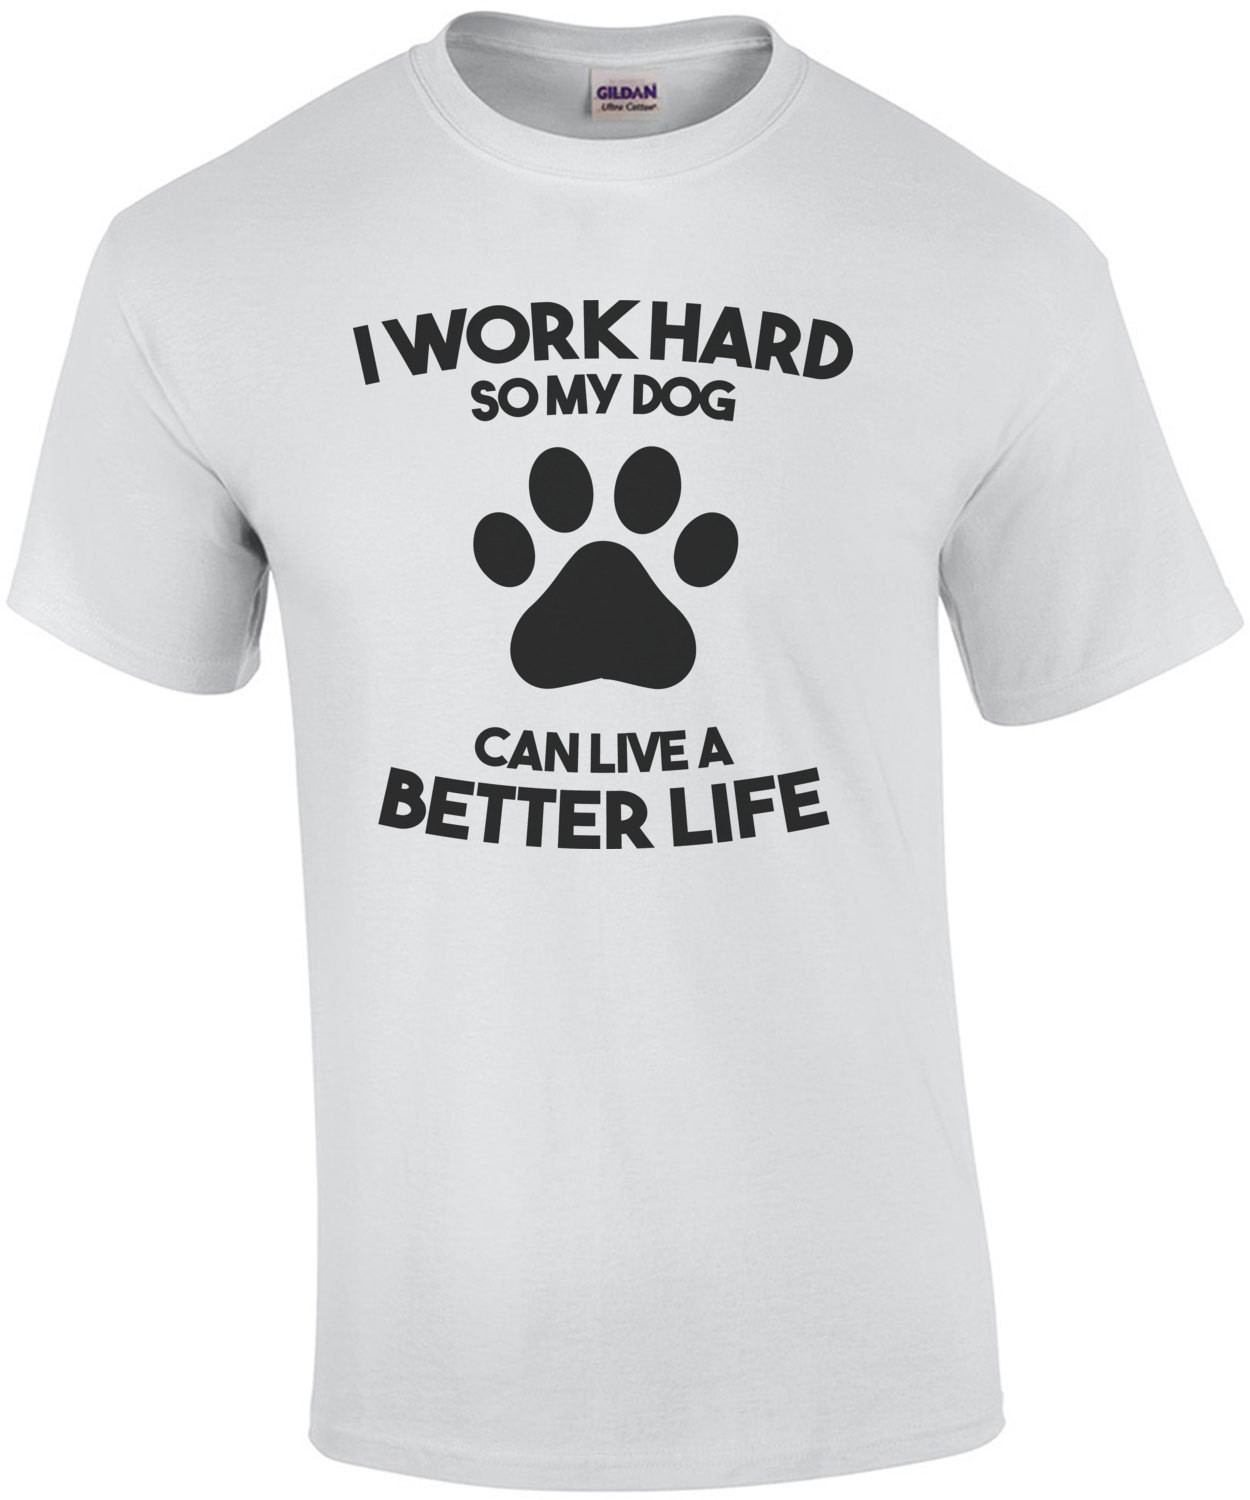 I work hard so my dog can live a better life - dog t-shirt